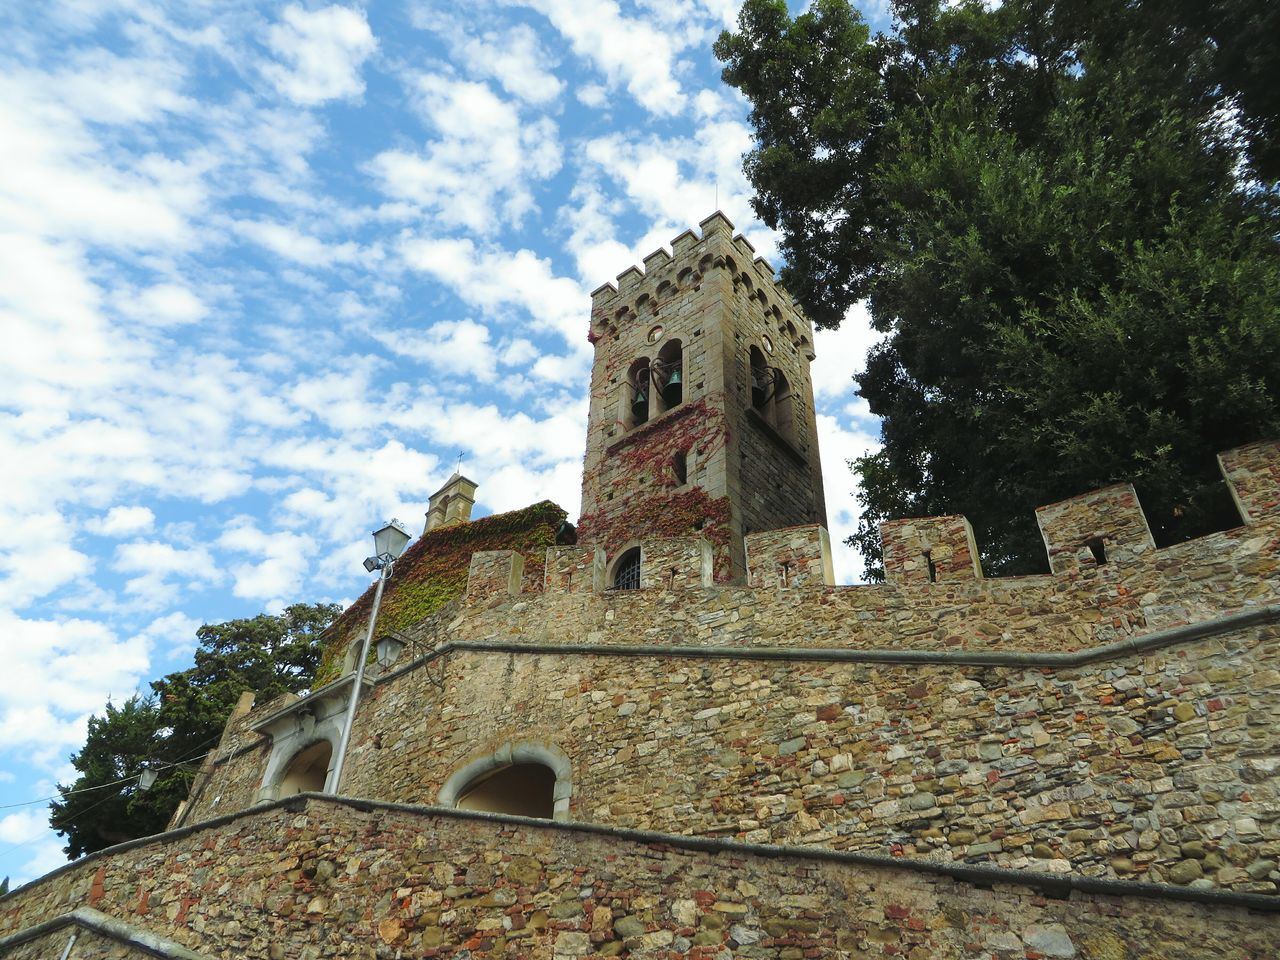 Building Exterior Low Angle View Built Structure Tower Sky Architecture History Cloud - Sky Castle Ancient No People Outdoors Medieval Clock Tower Bell Tower Bell Bella Italia EyeEmNewHere